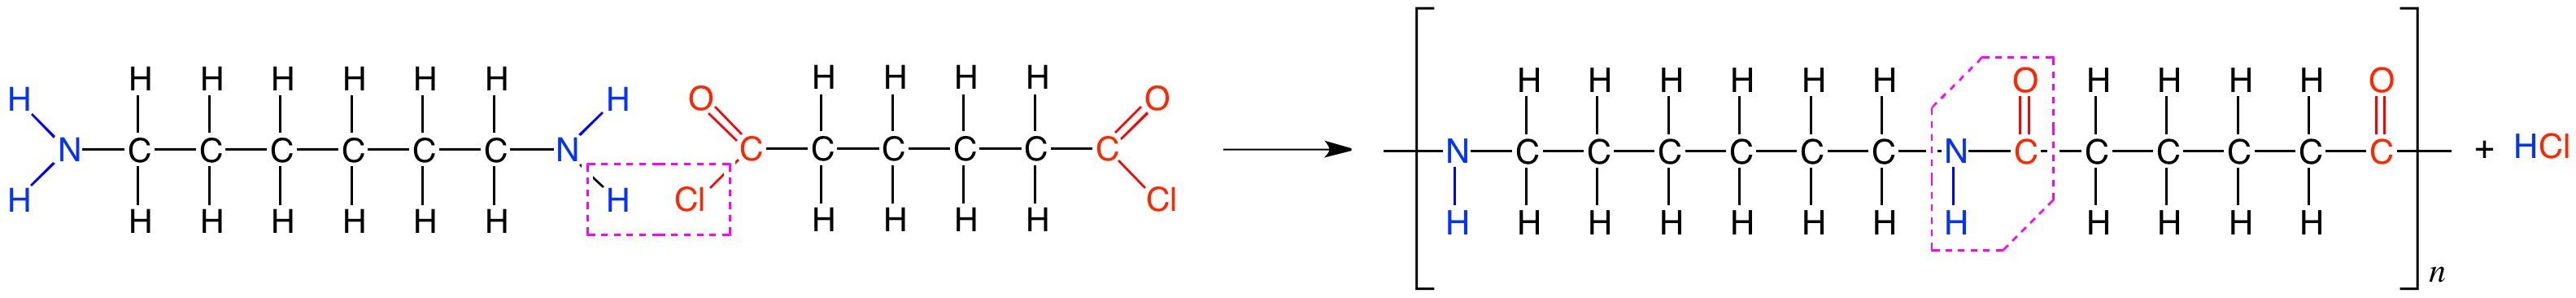 Nylon 6,6 formation using adipoyl chloride.png English: Nylon 6,6 formation using adipoyl chloride Date 19 April 2014, 21:30:39 Source Own